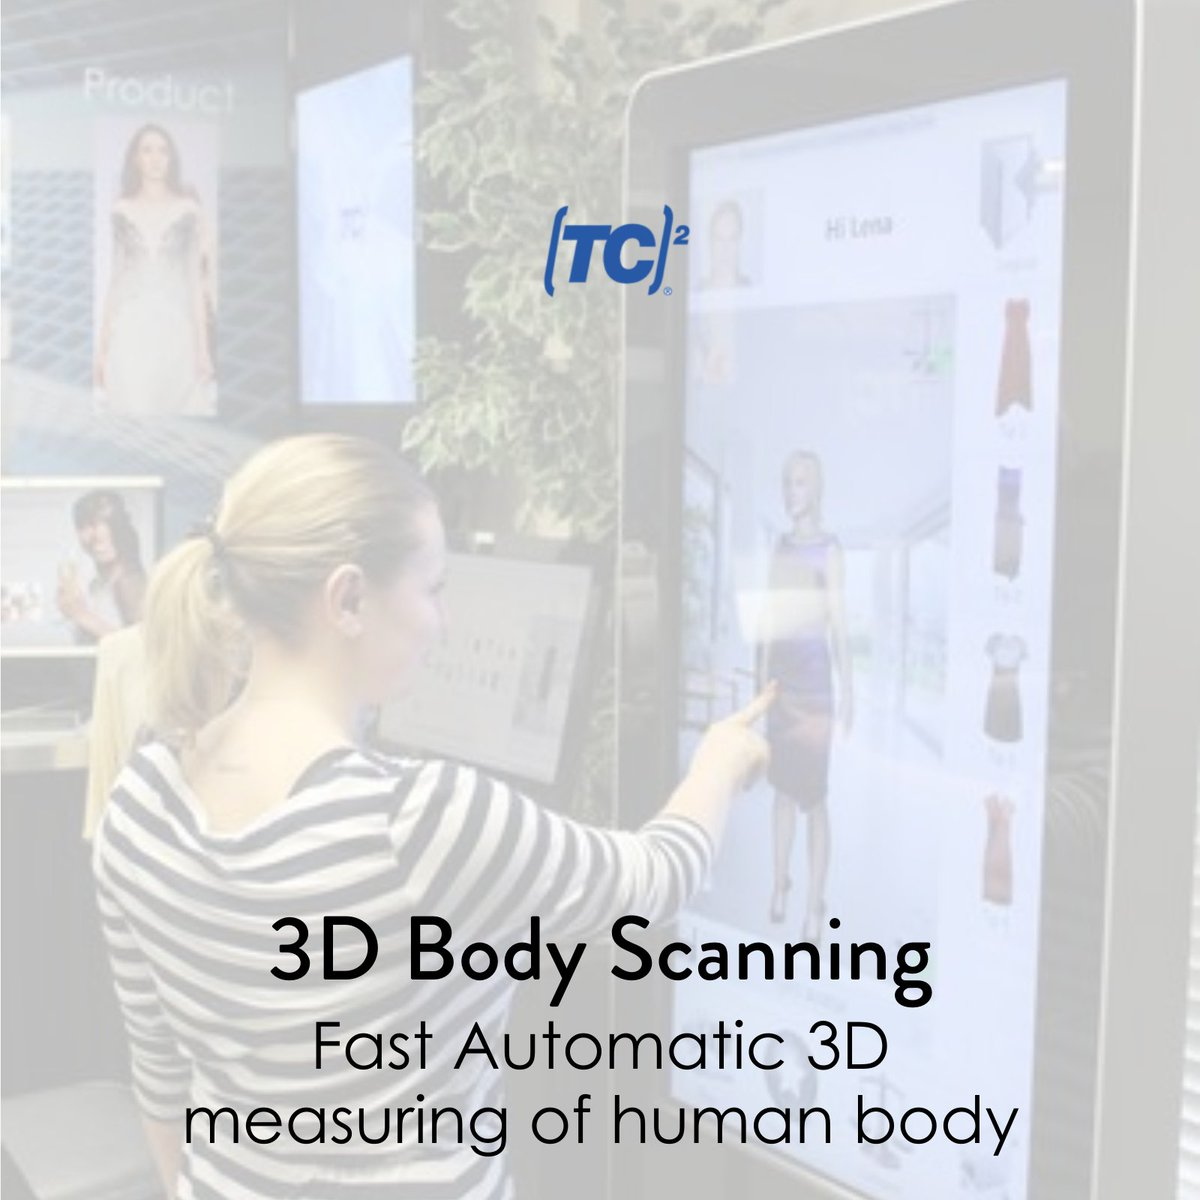 Body scanning and measuring now made not only easy but also more accurate and fast. Know More >>    #EasySetUp #SelfScan #MobileScanner #3DTechnology #Fashion #Research #Reality #3DServices #3DScanners #Tc2 #TcSquared #USA #LatestTechnology #3dPrints #US